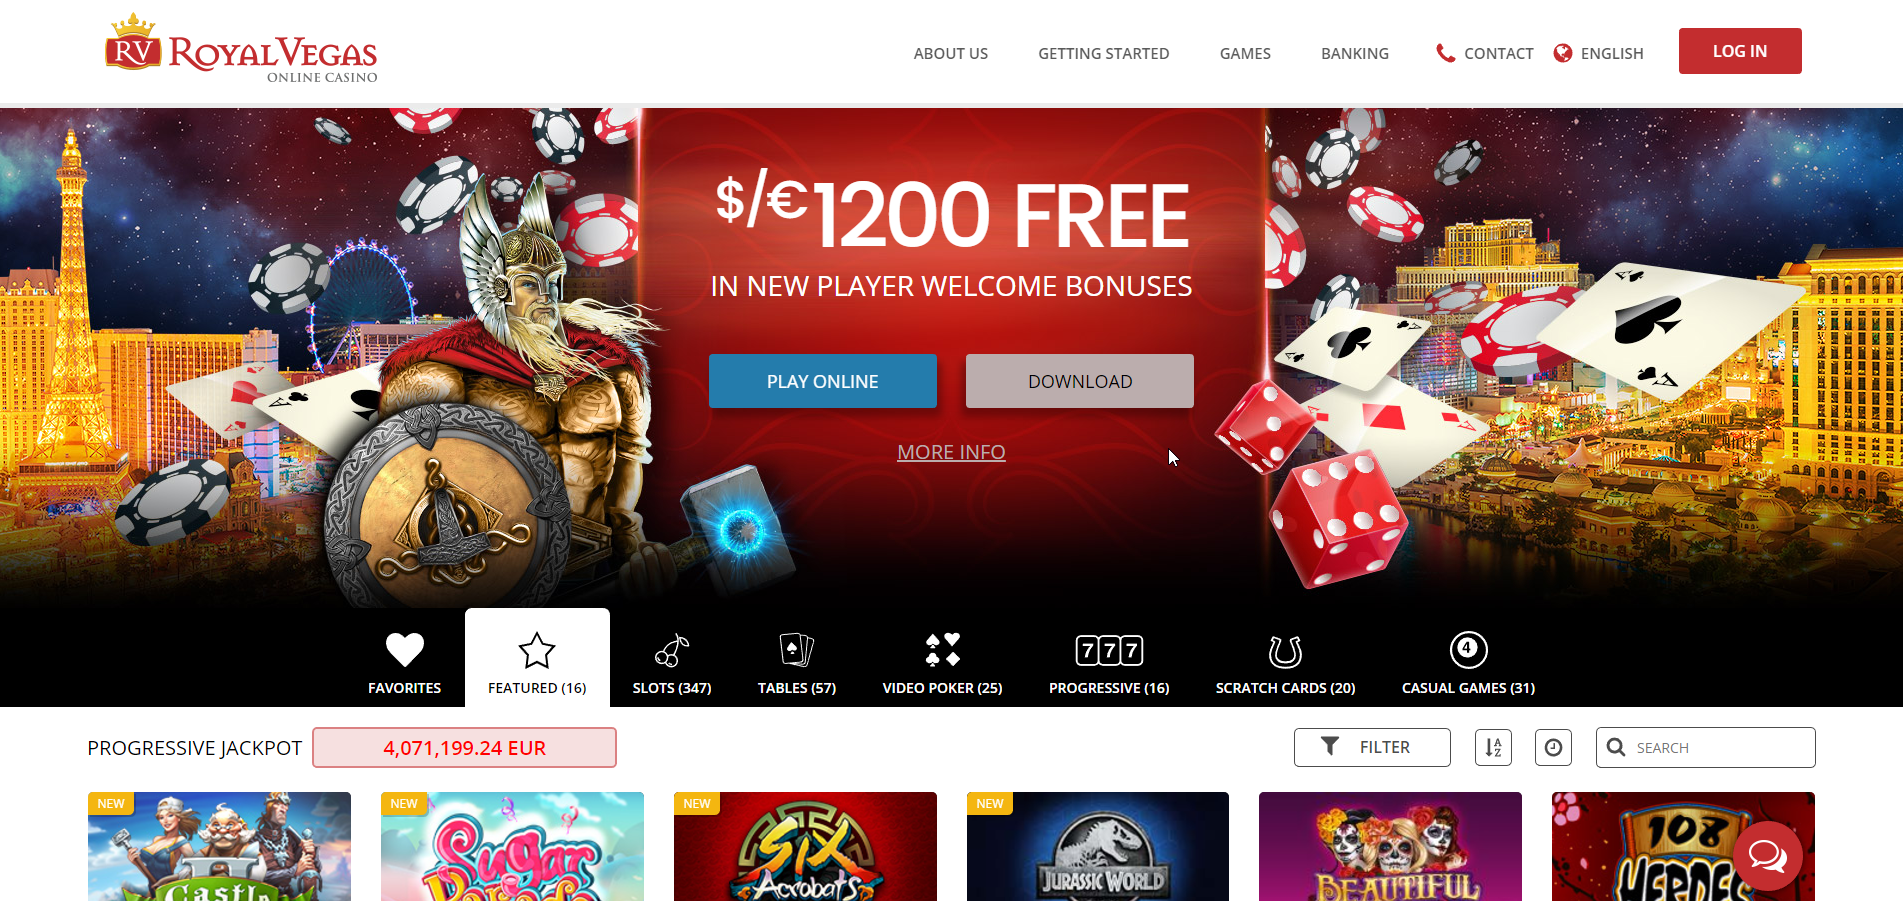 Play2Win Casino Online Review With Promotions & Bonuses